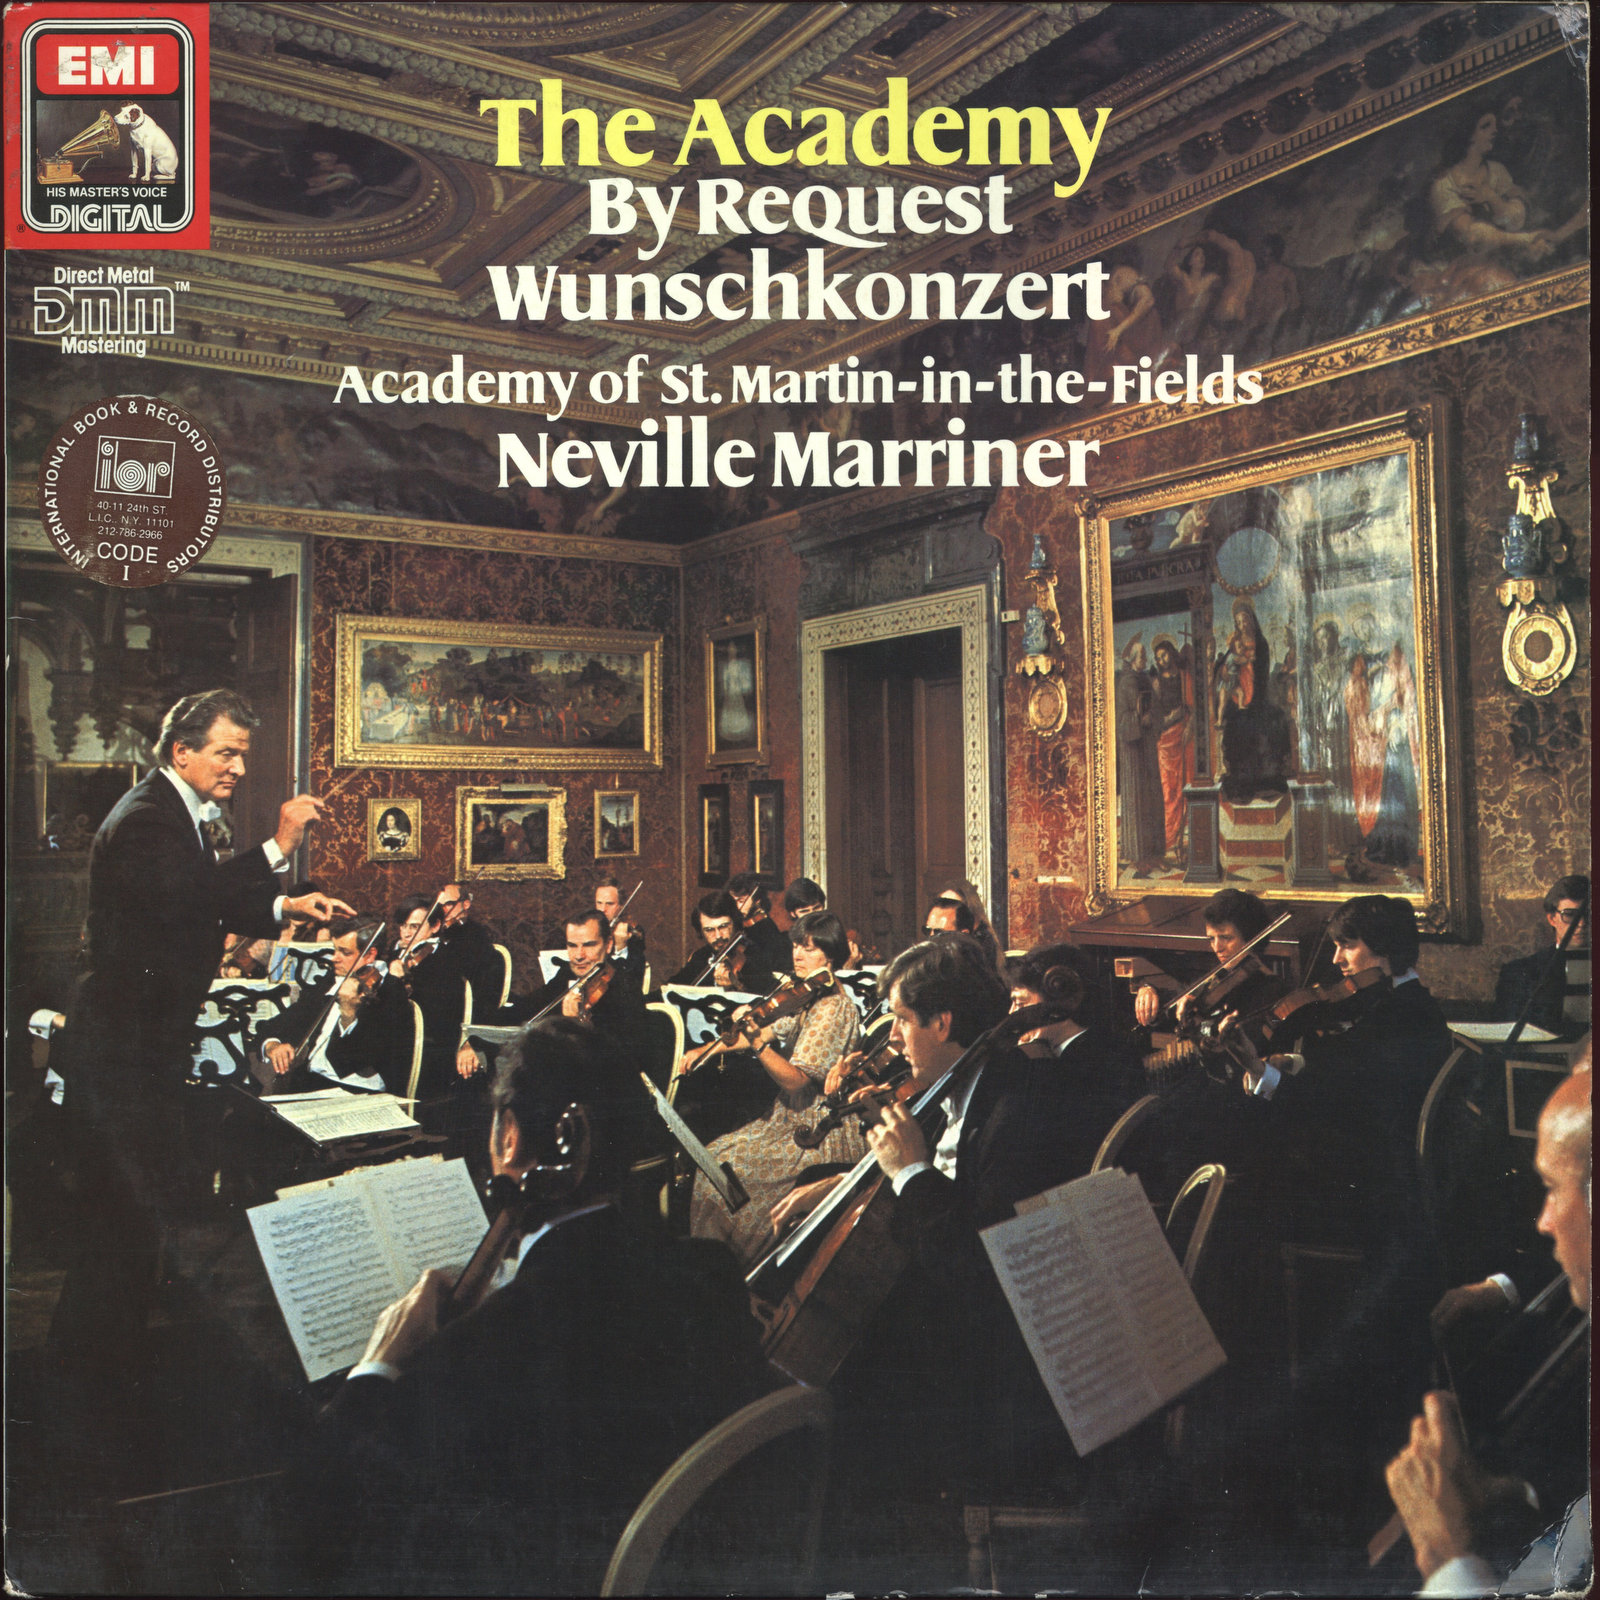 The Academy: Listening To The Academy By Request